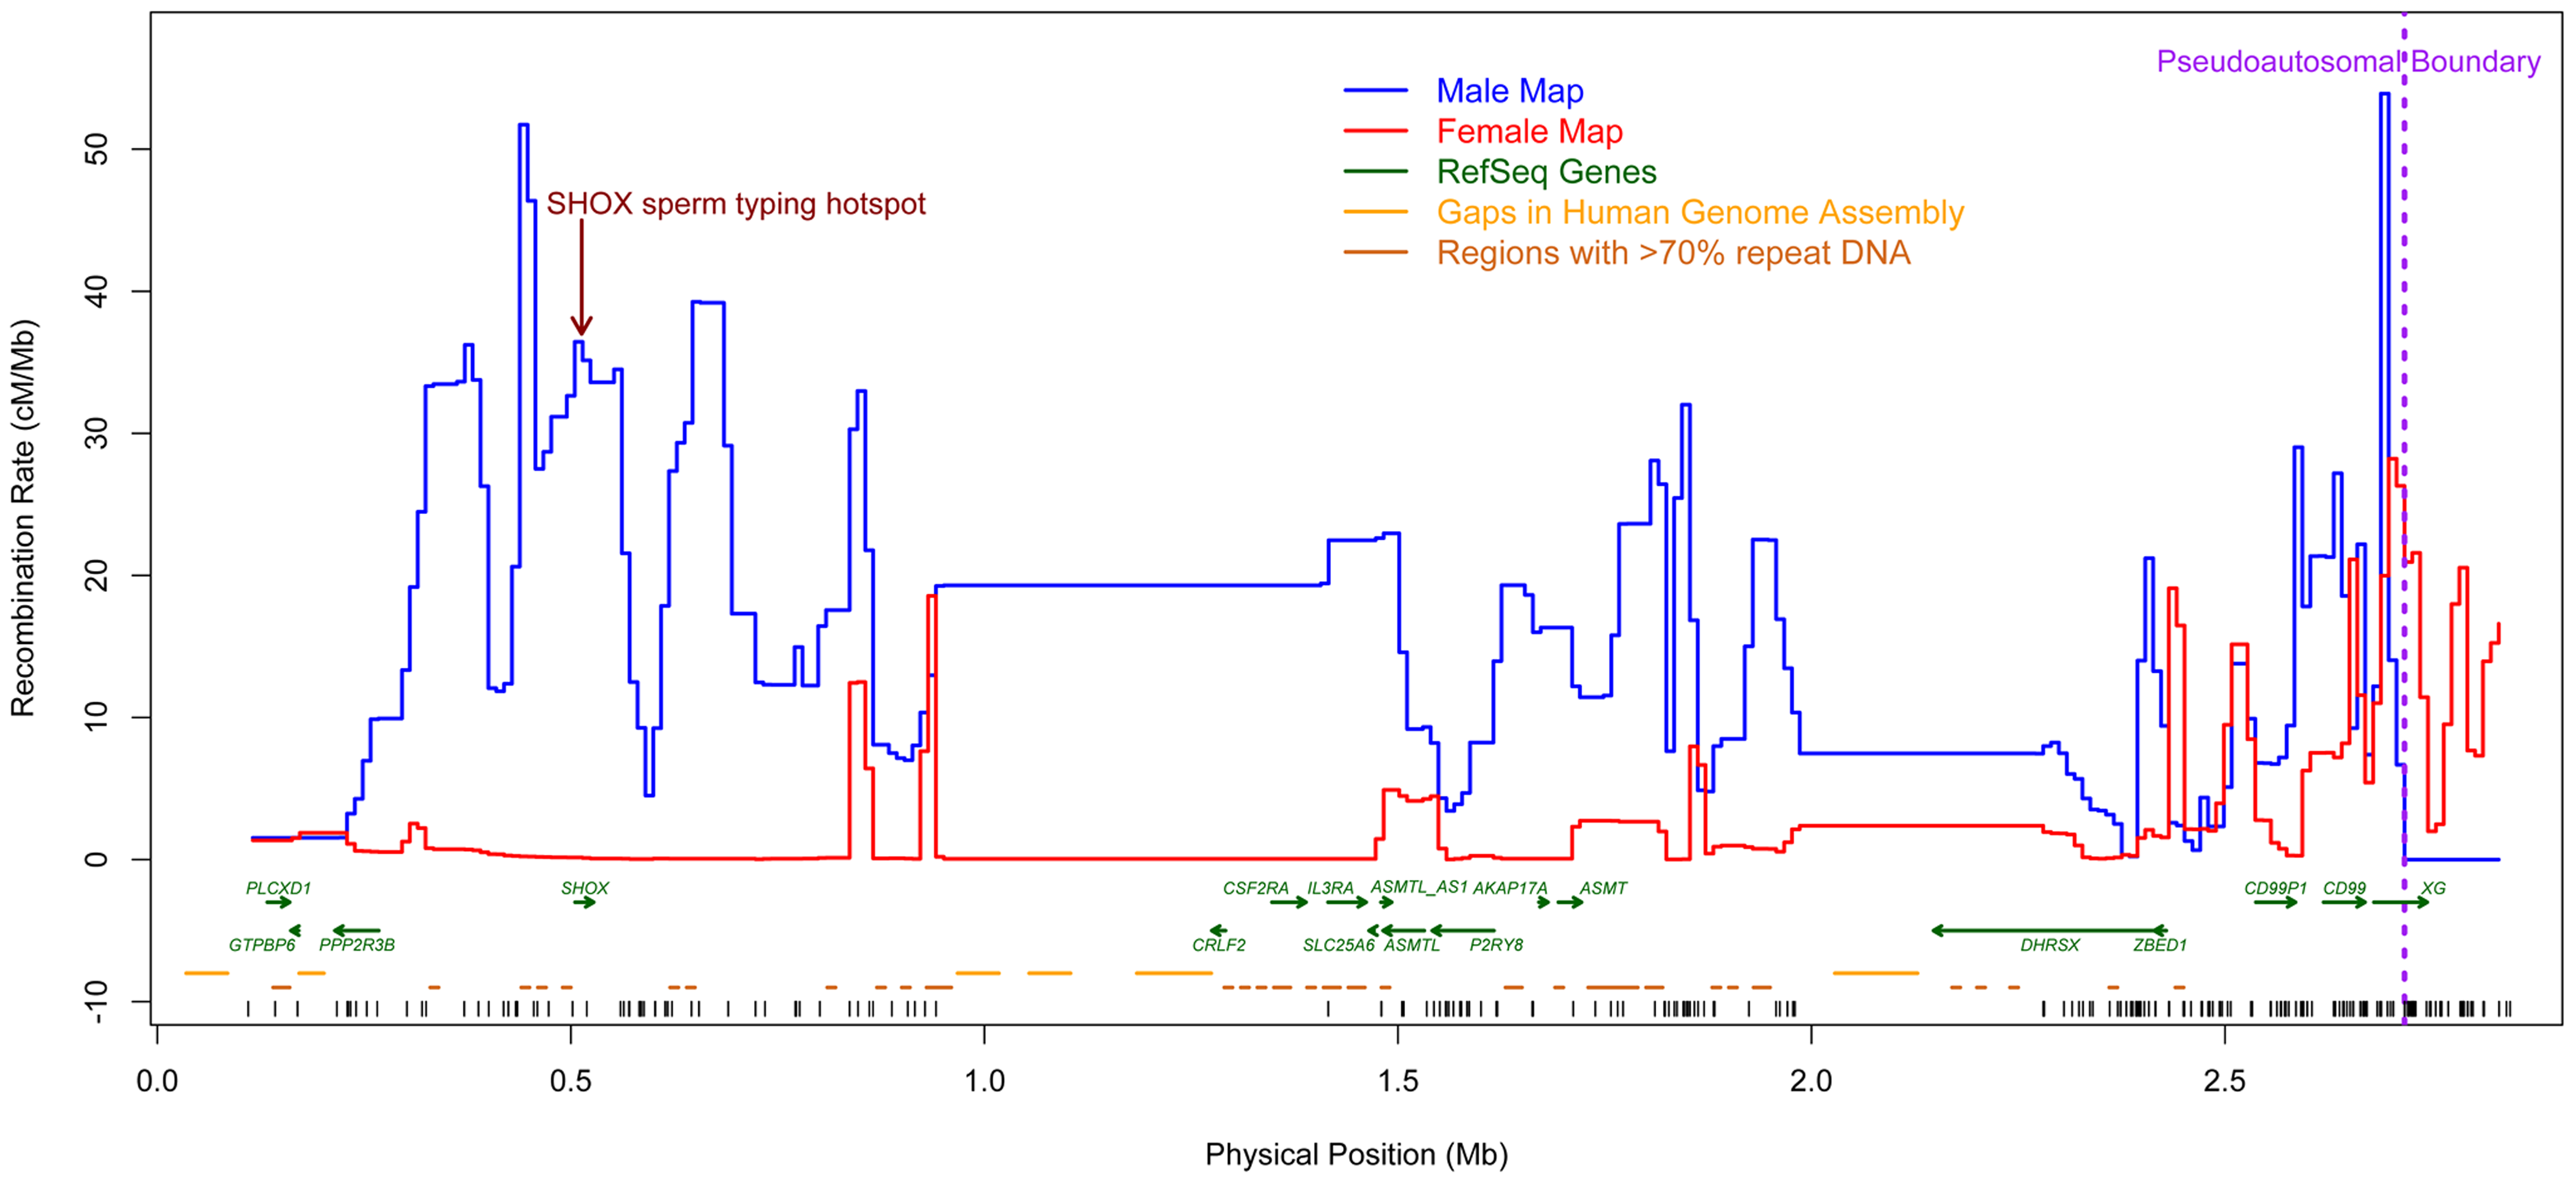 New sex-specific pedigree-based genetic maps (10 kb scale).